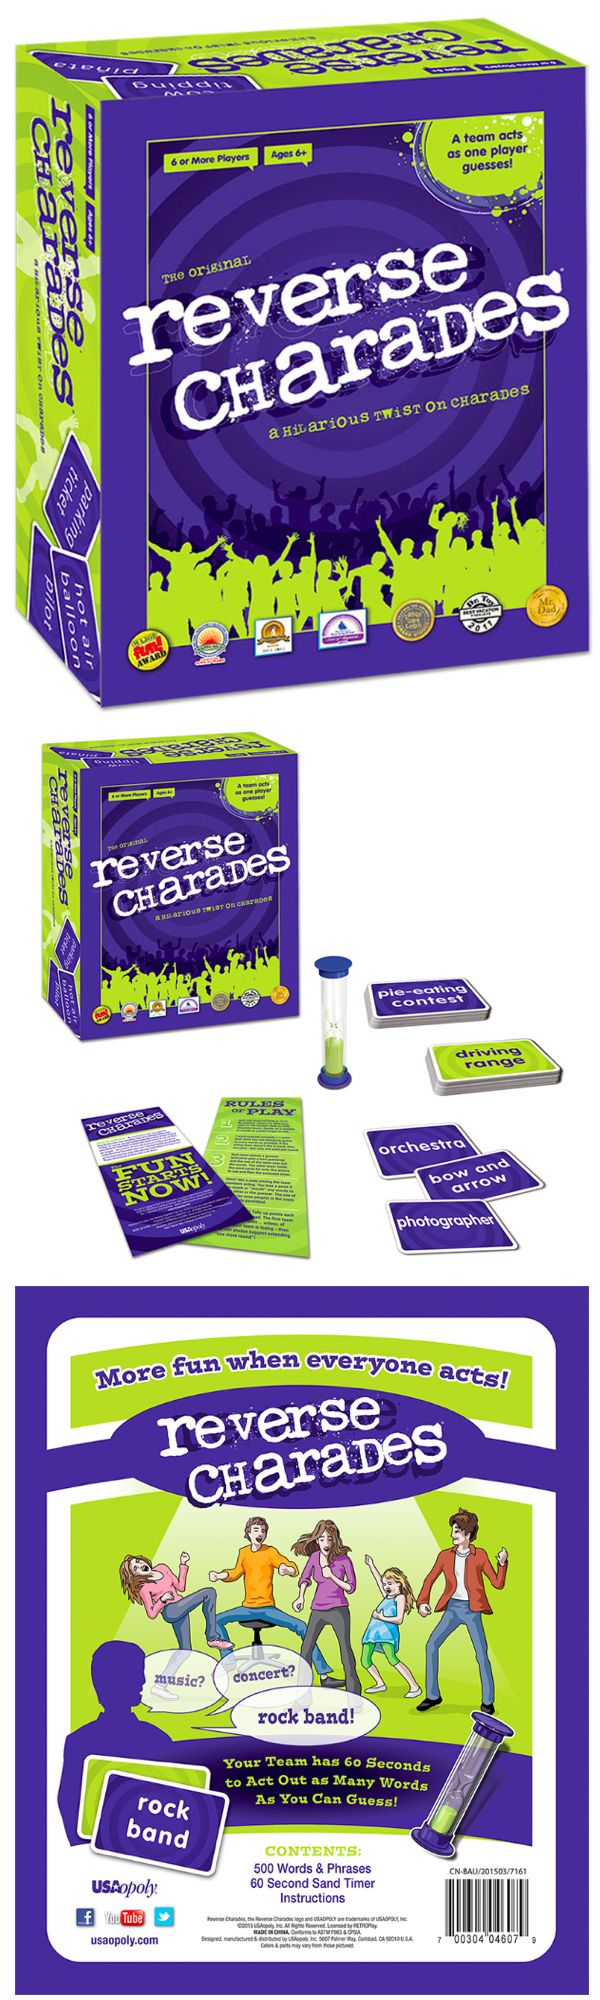 Award-winning Reverse Charades is a hilarious twist on the classic game of charades. Instead of one person acting out a clue for a team to guess, a team acts out clues for one person, so now everyone is in on the fun! Your team has 60 seconds to act out as many words as the guesser can get. The team with the most correct guesses wins! Reverse Charades is perfect for family fun, parties or team building! #ReverseCharades #icebreaker #partygames #familyfun #USAopoly